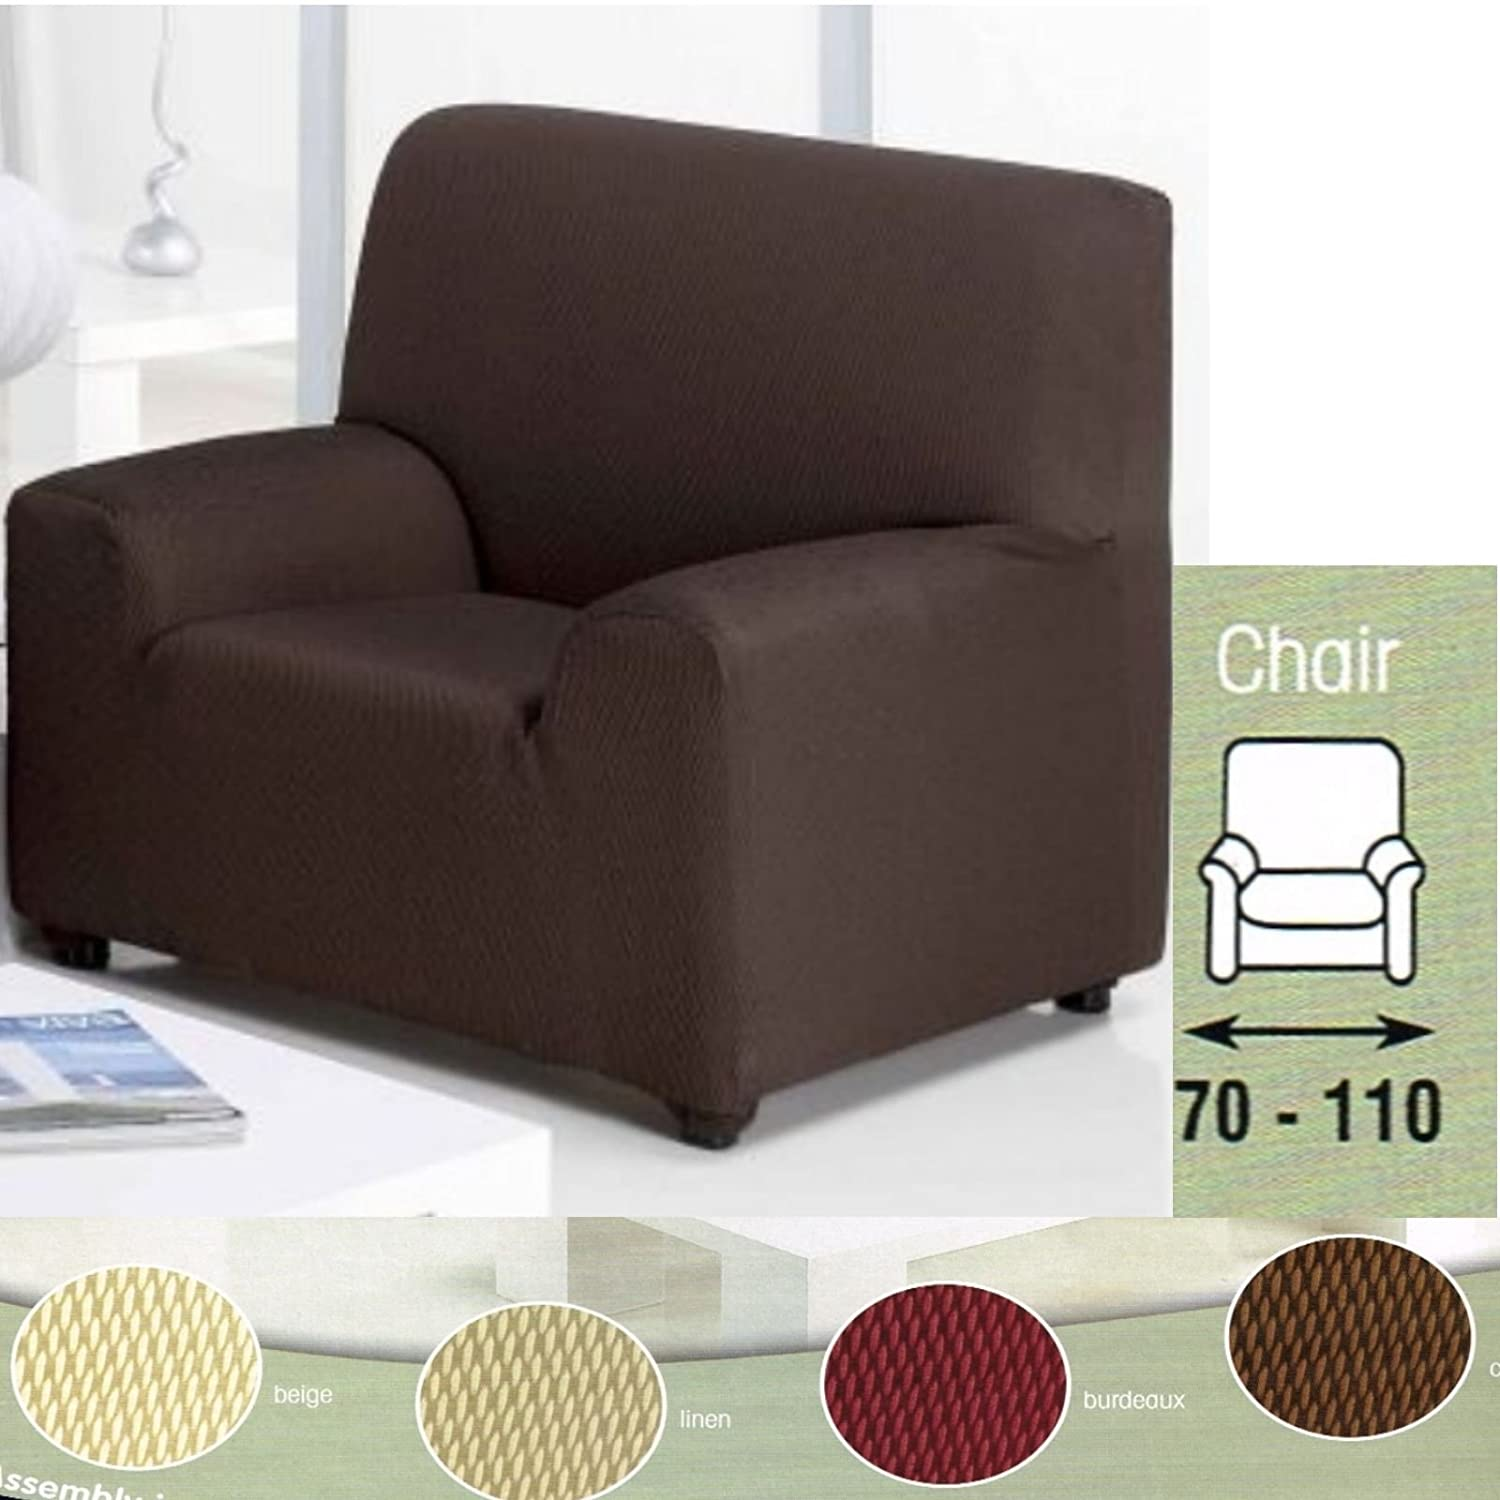 Hallways Easy Fit Stretch Elastic Arm Chair One Seater Beige Cream Fabric  Slip Over Washable Cover: Amazon.co.uk: Kitchen U0026 Home